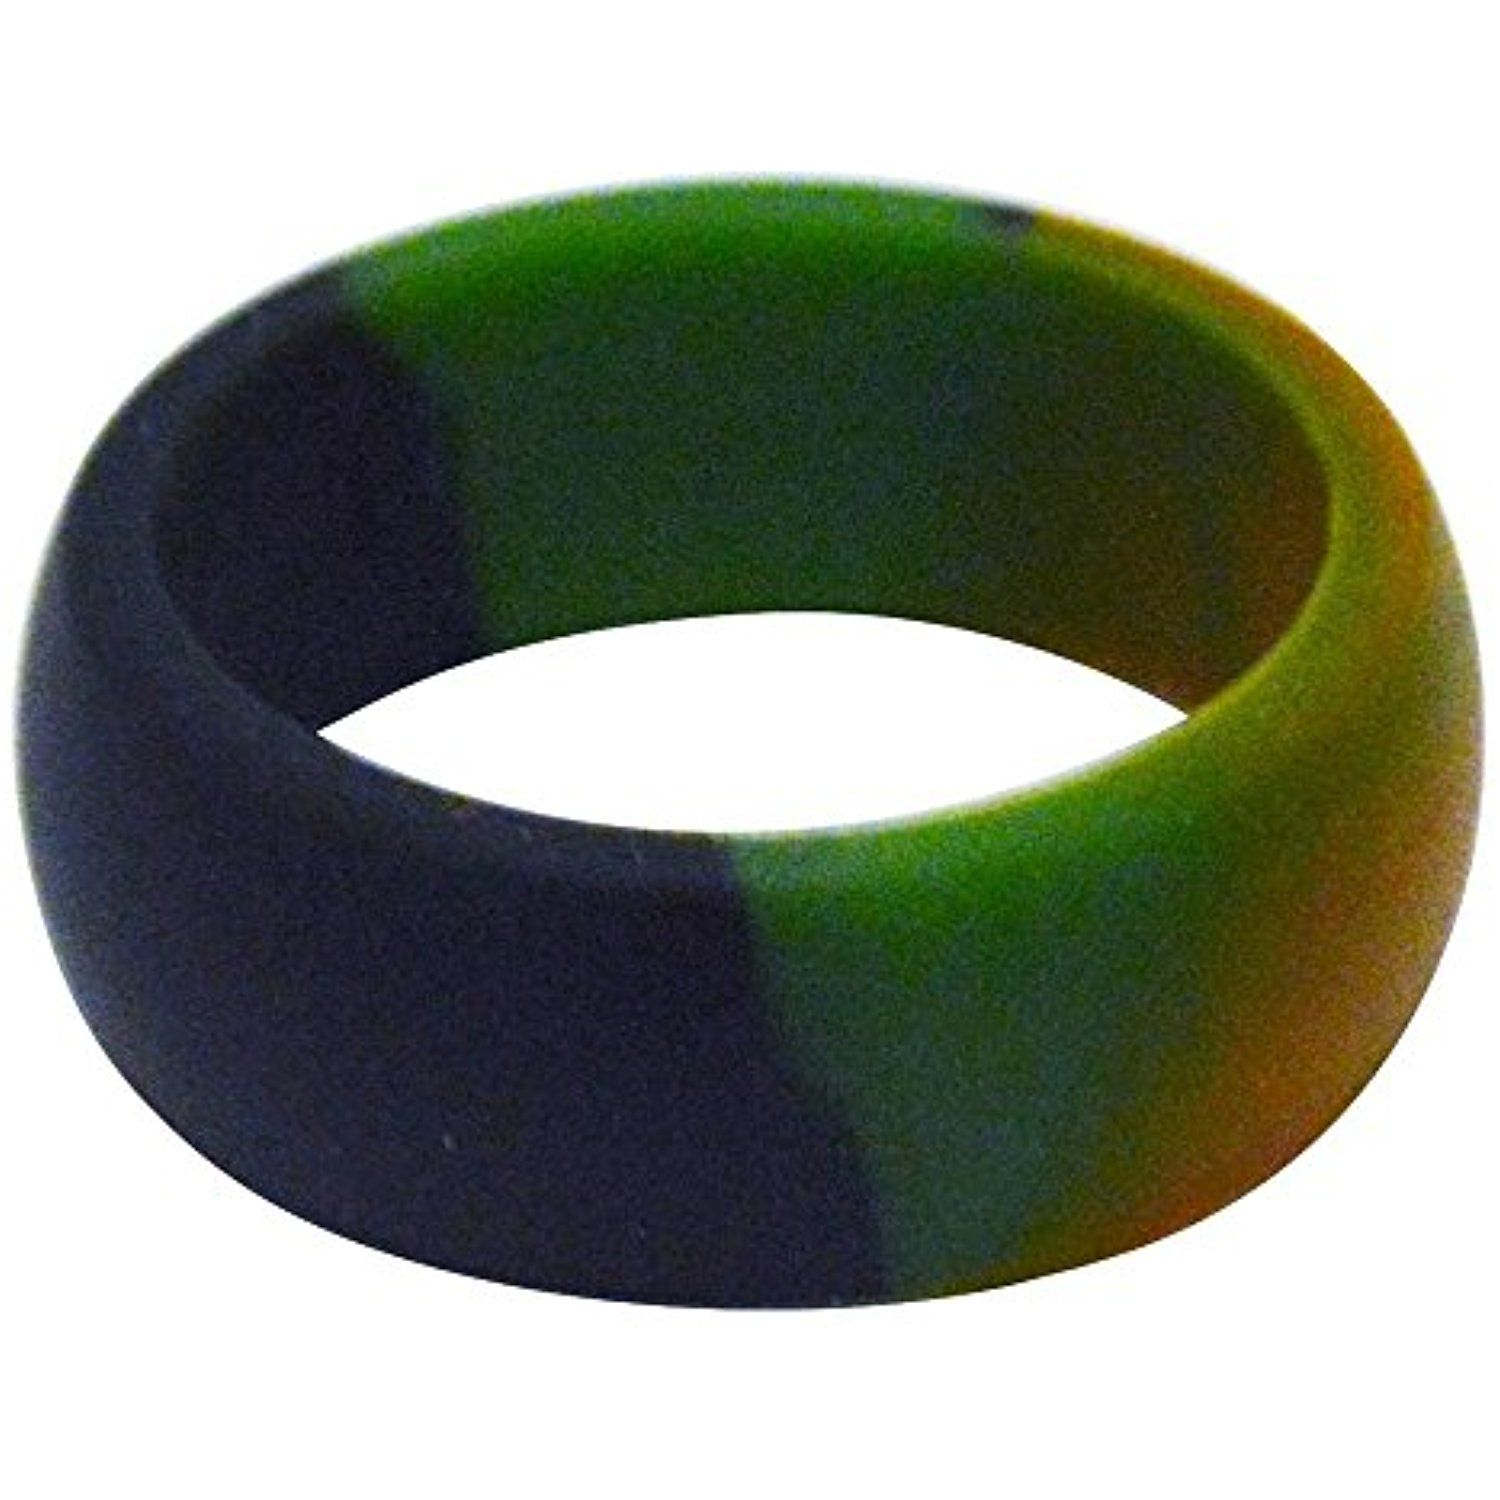 Men's Silicone Wedding Ring by Rubber Diamonds The Safe